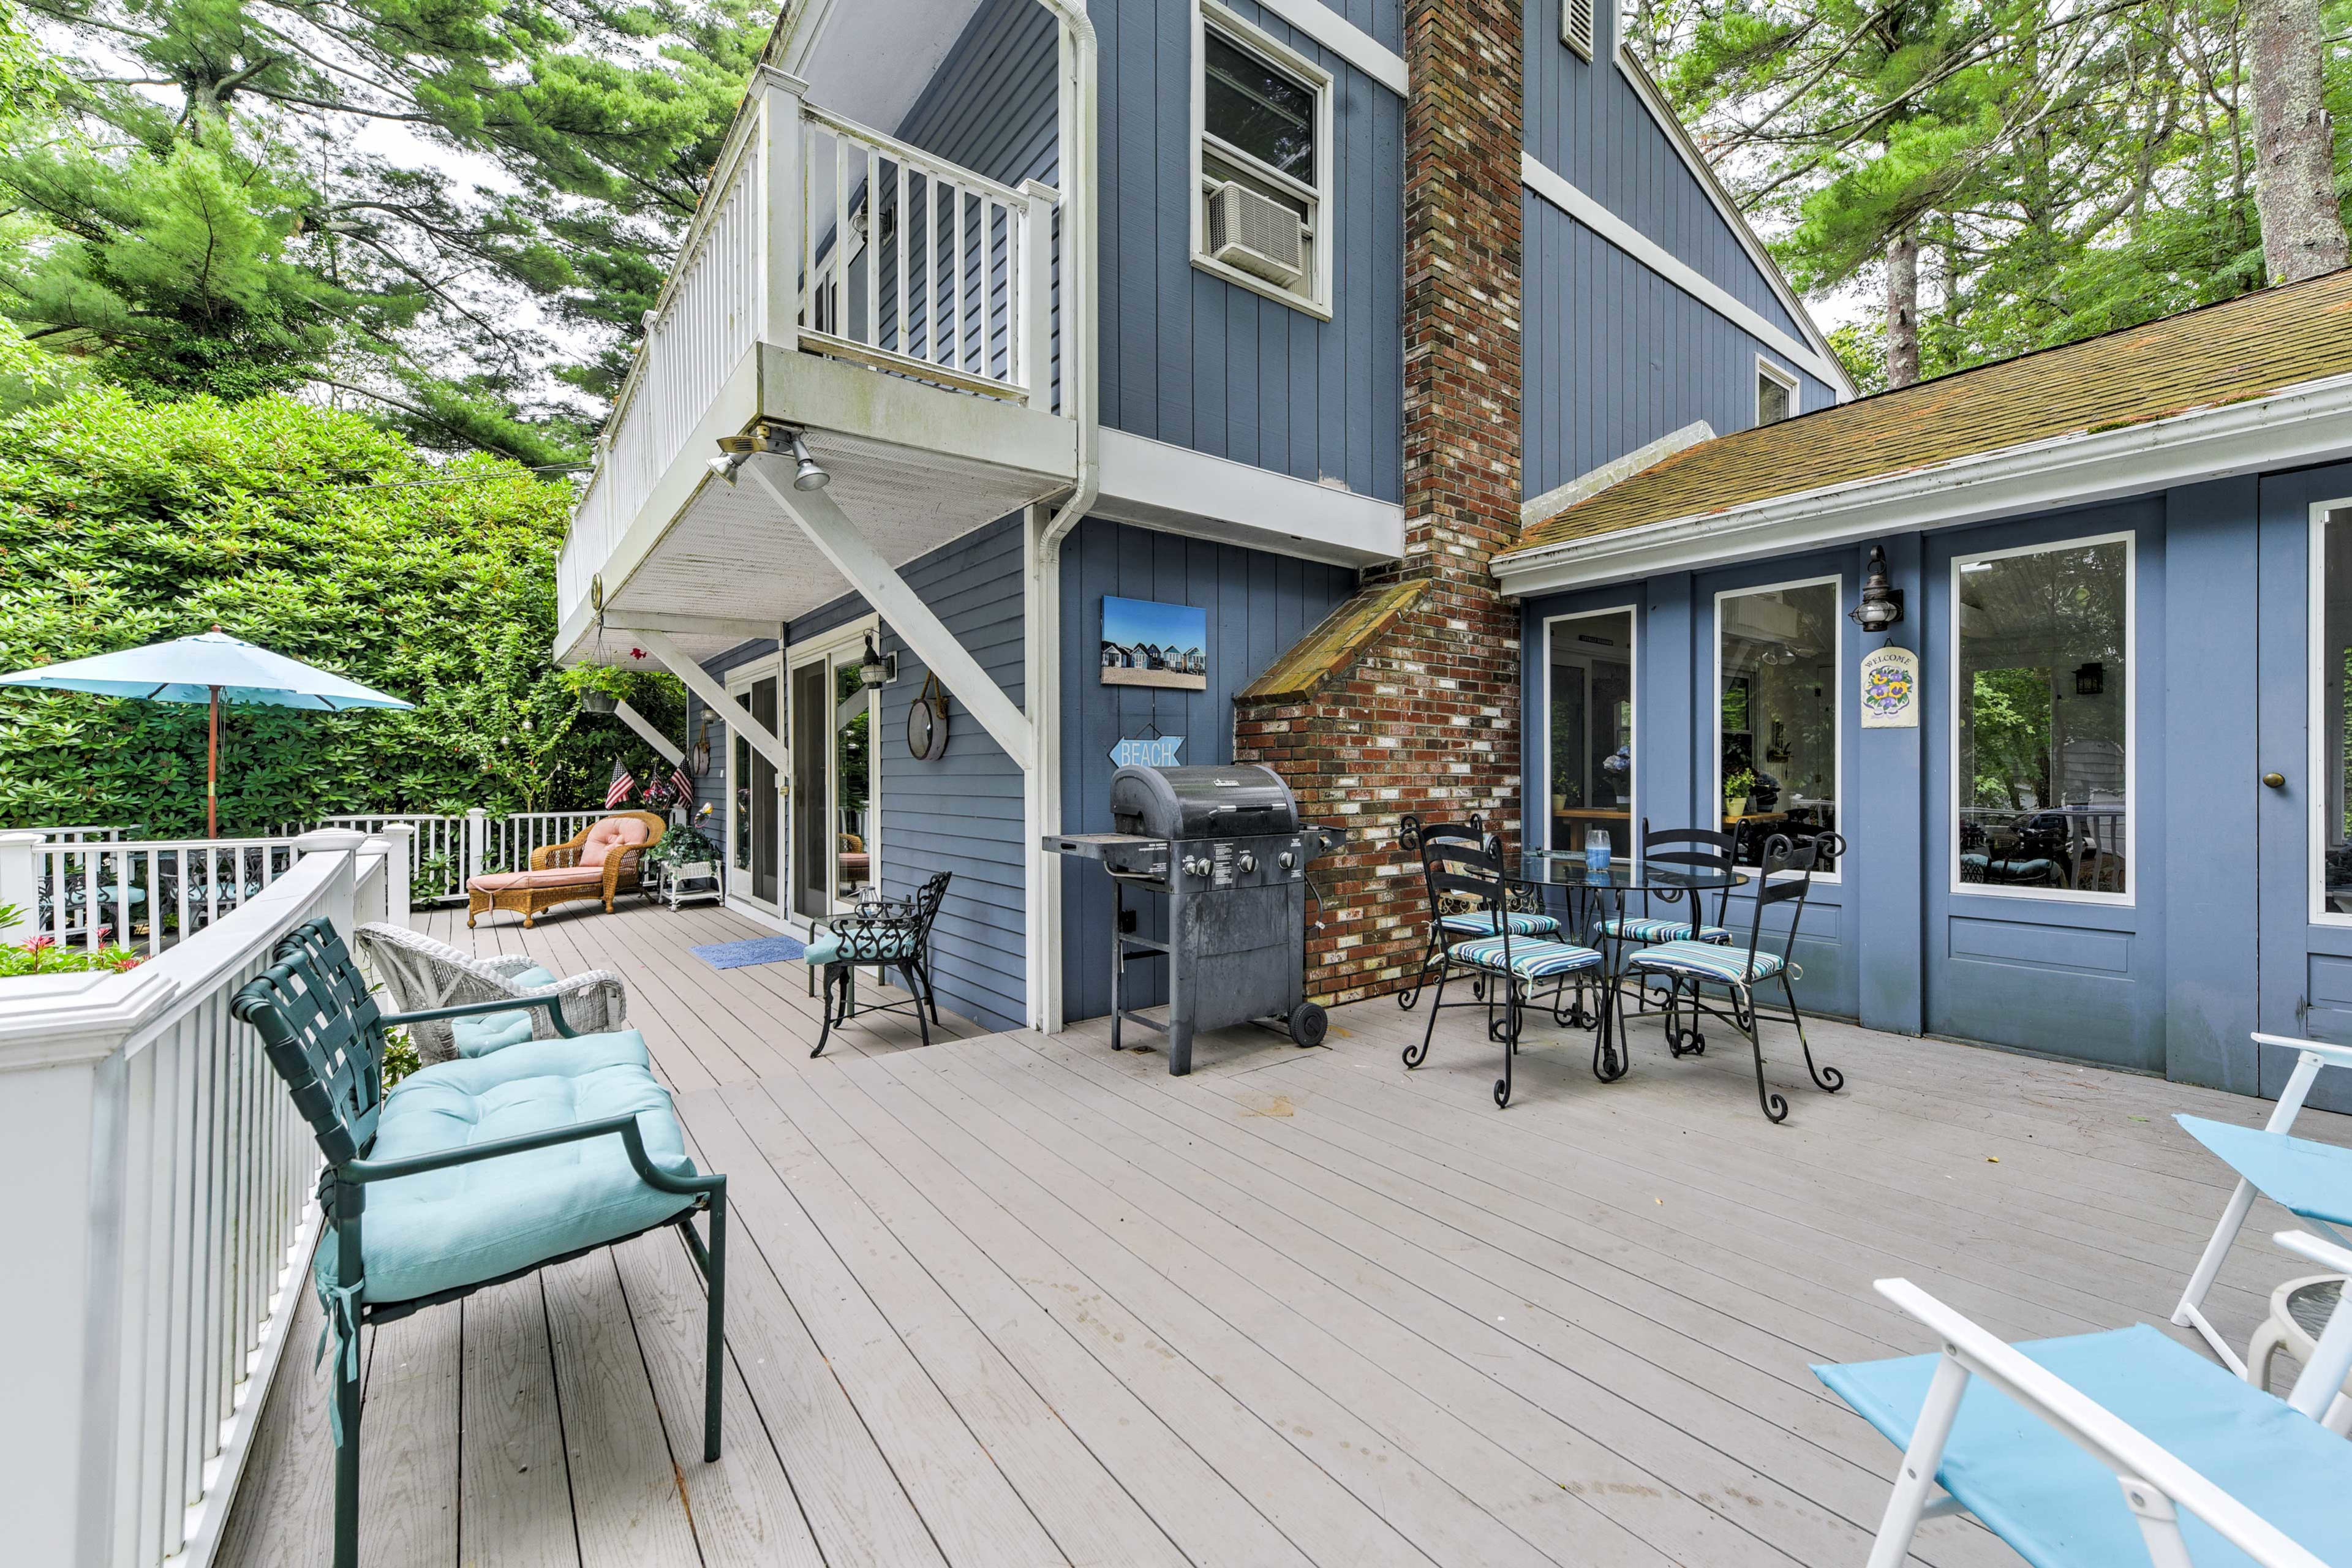 This 4-bedroom, 2.5-bath vacation rental offers a spacious back deck.